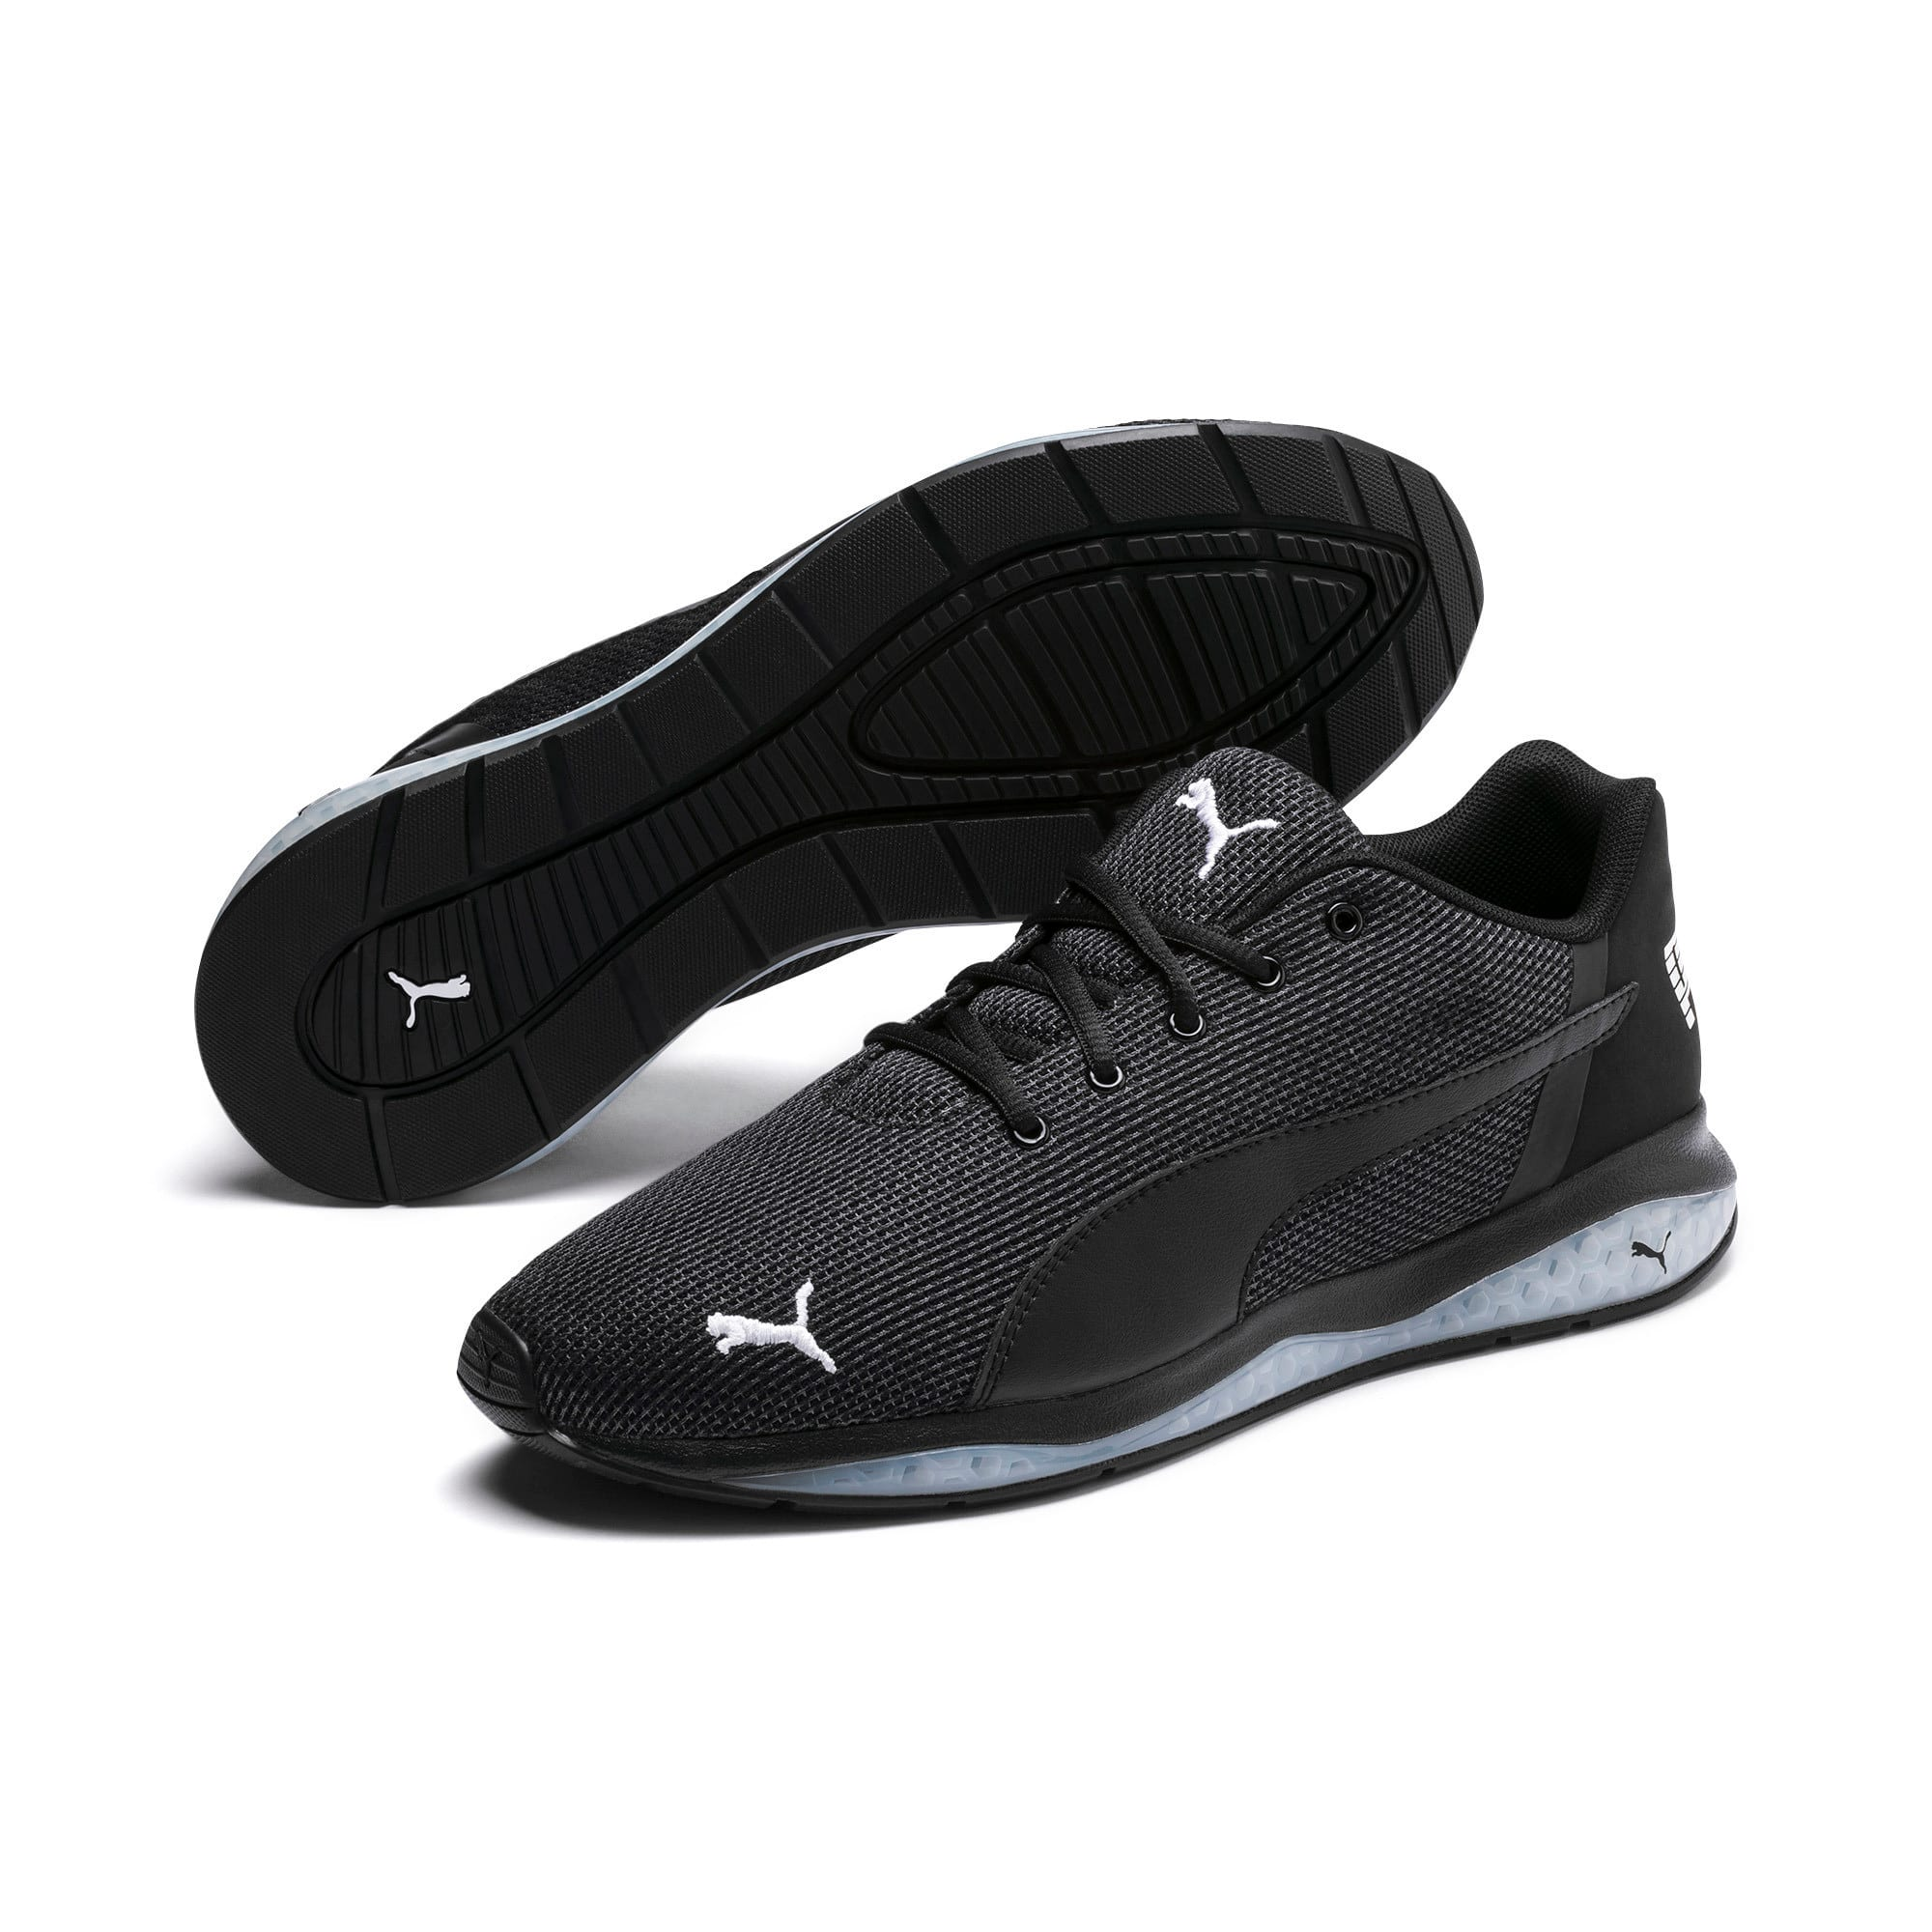 Thumbnail 2 of Cell Ultimate Point Knitted Men's Running Shoes, Puma Black-Puma White, medium-IND